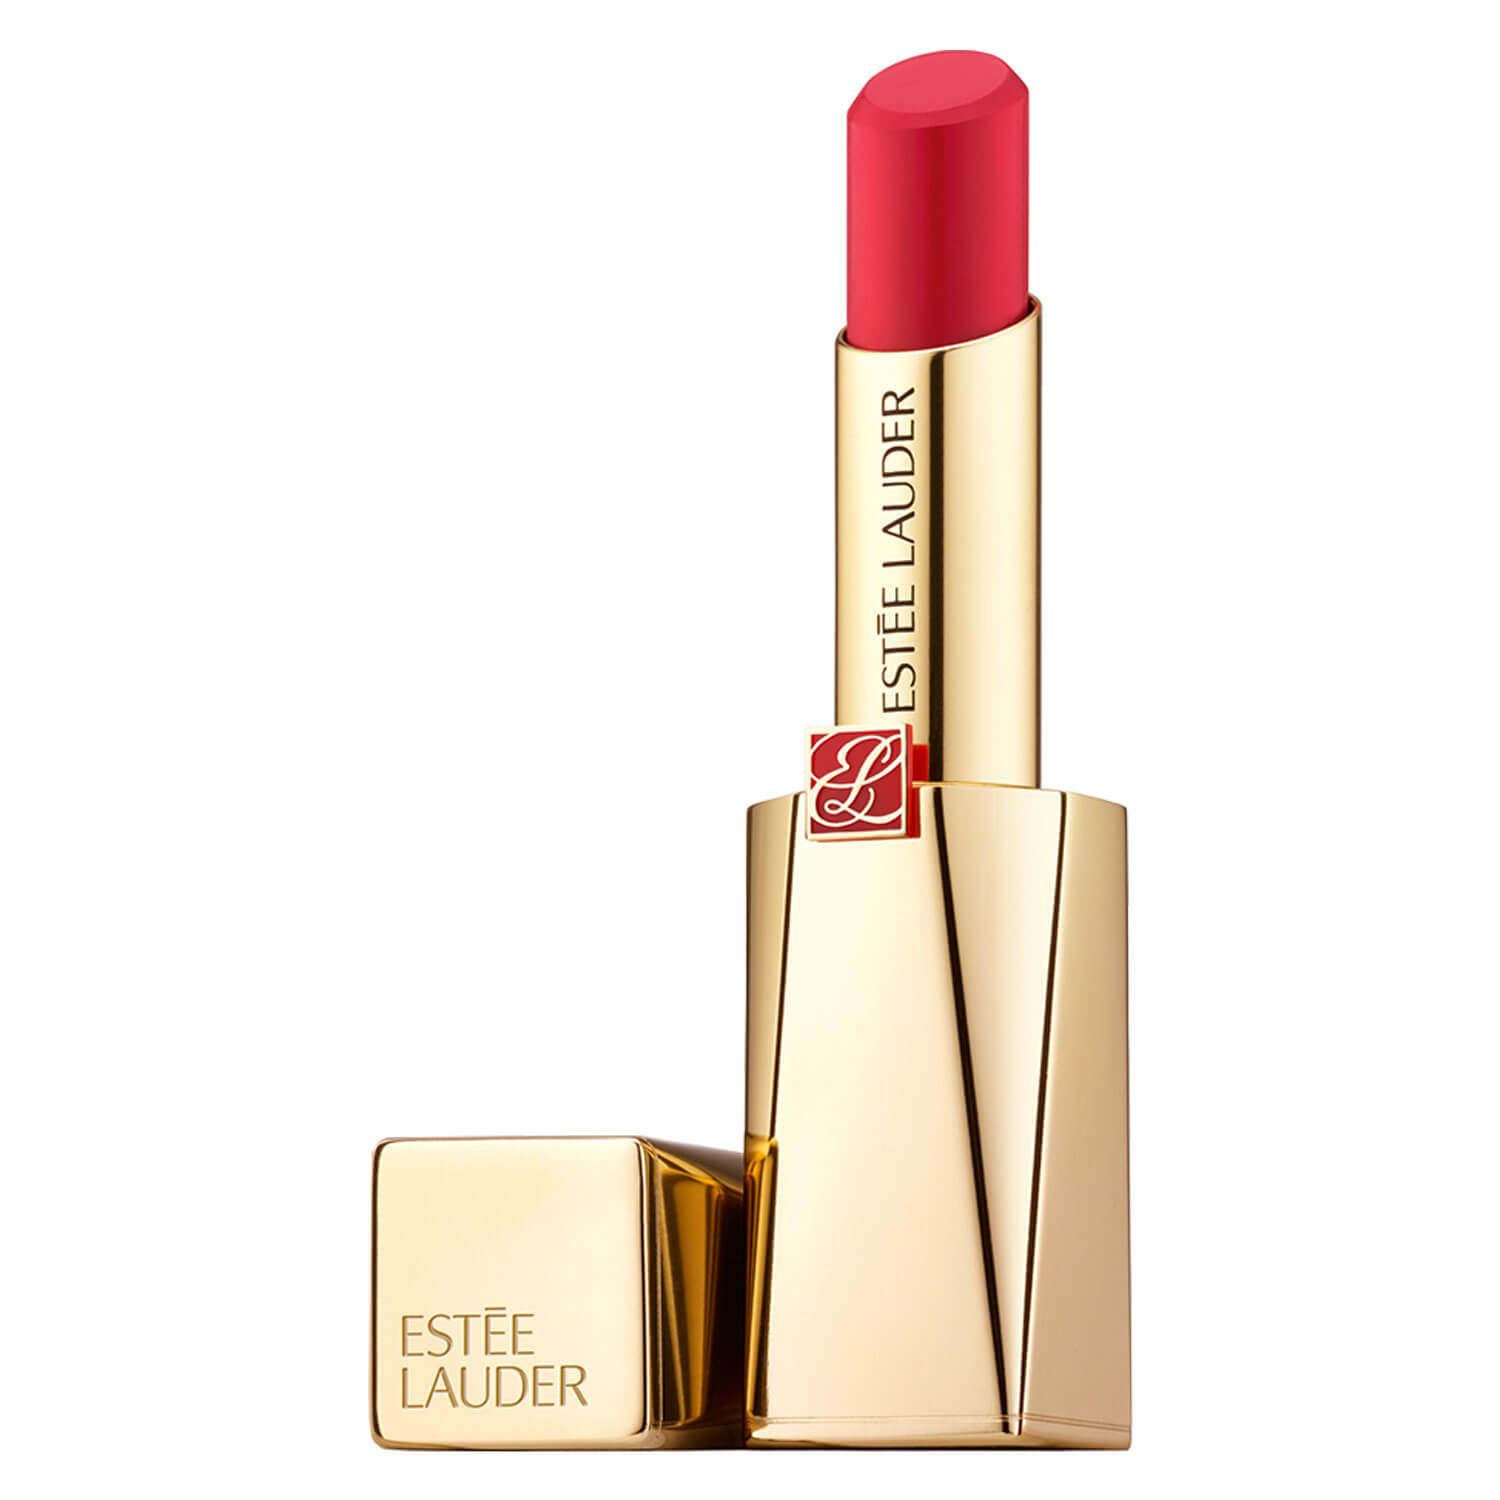 Pure Color Desire - Rouge Excess Lipstick Outsmart 301